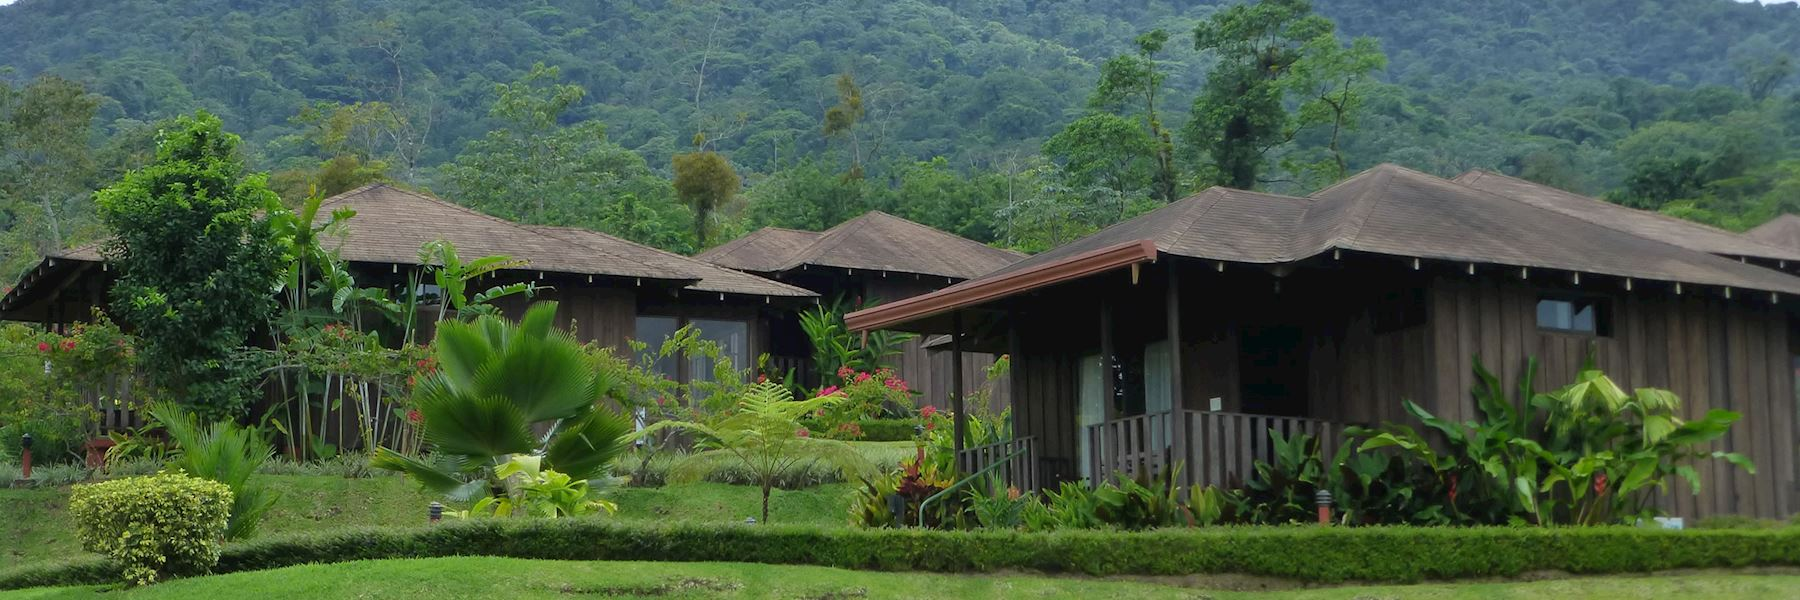 Accommodation in Costa Rica